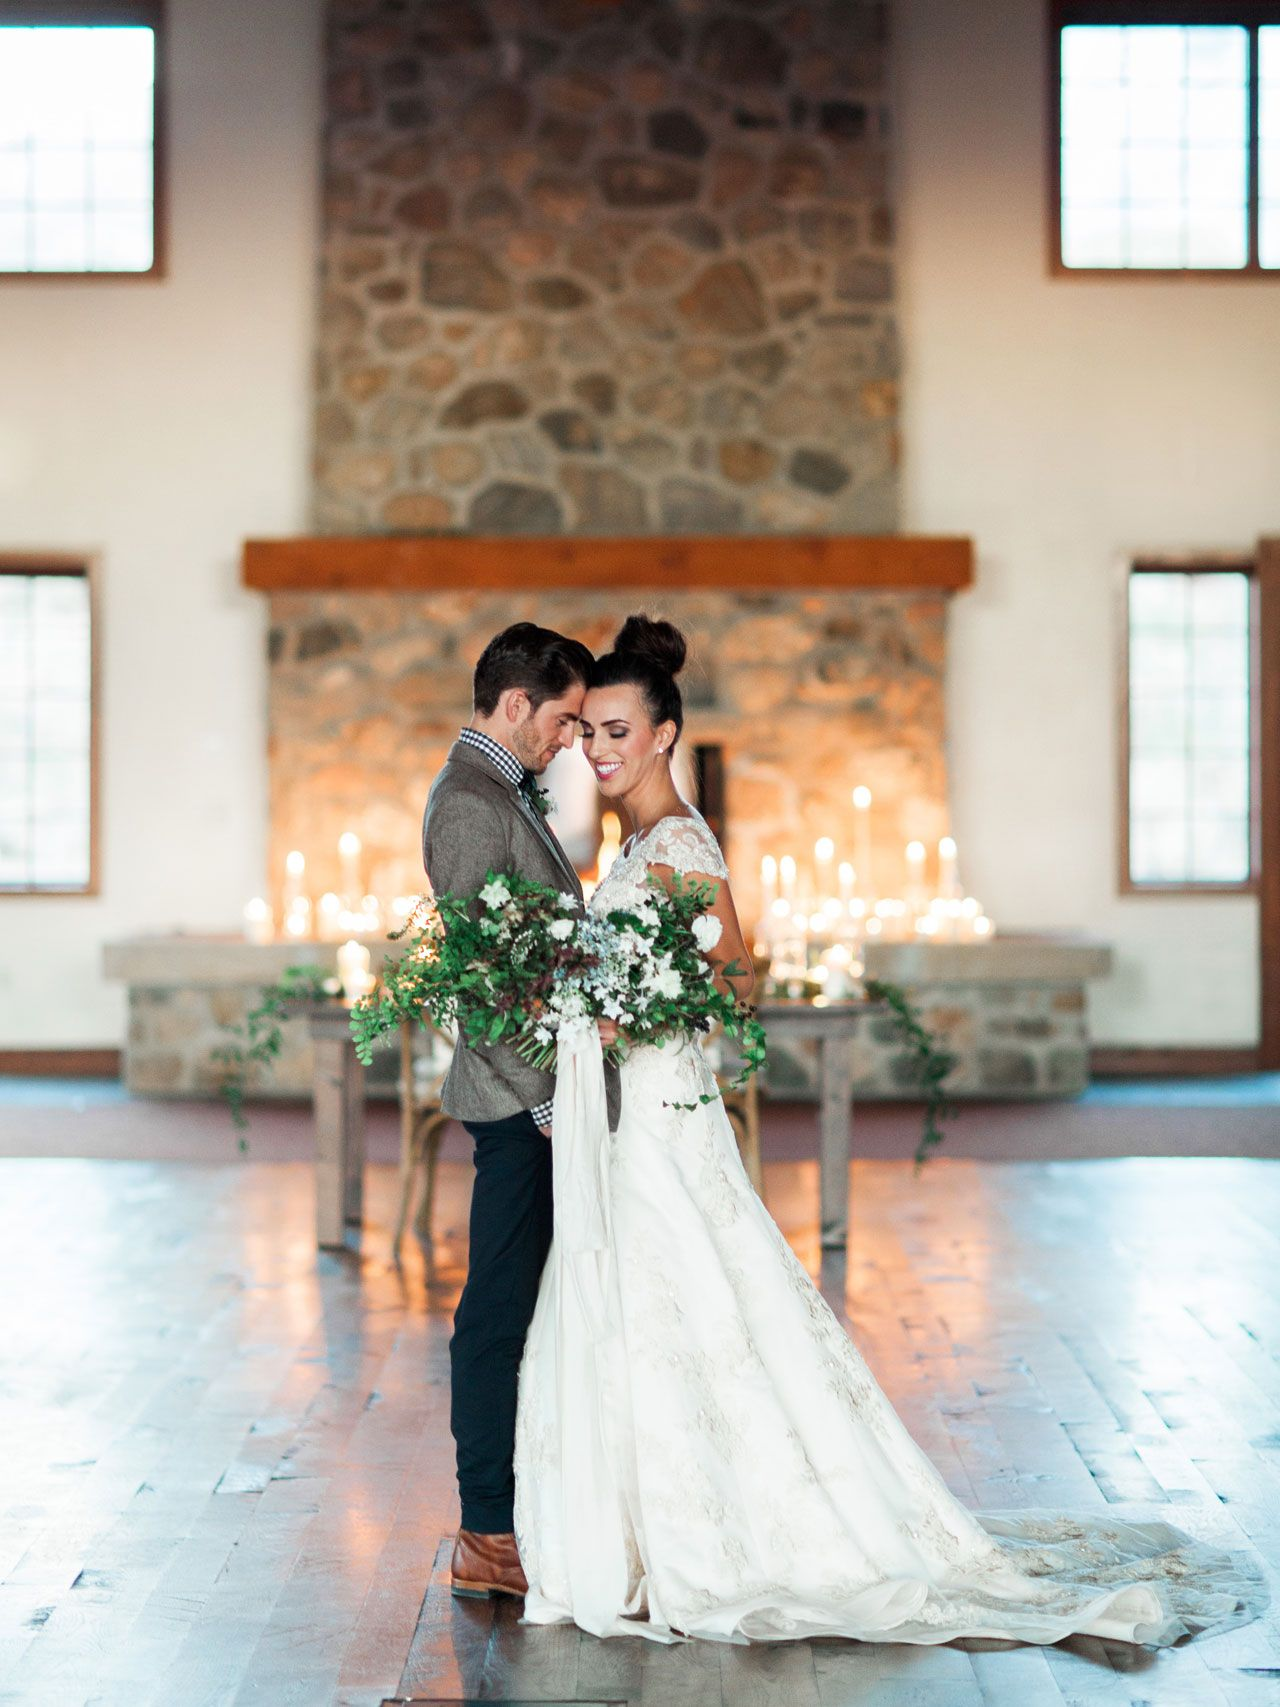 The dress garden utah - Weddings At The Garden Place This Is The Place Heritage Park 801 924 7507